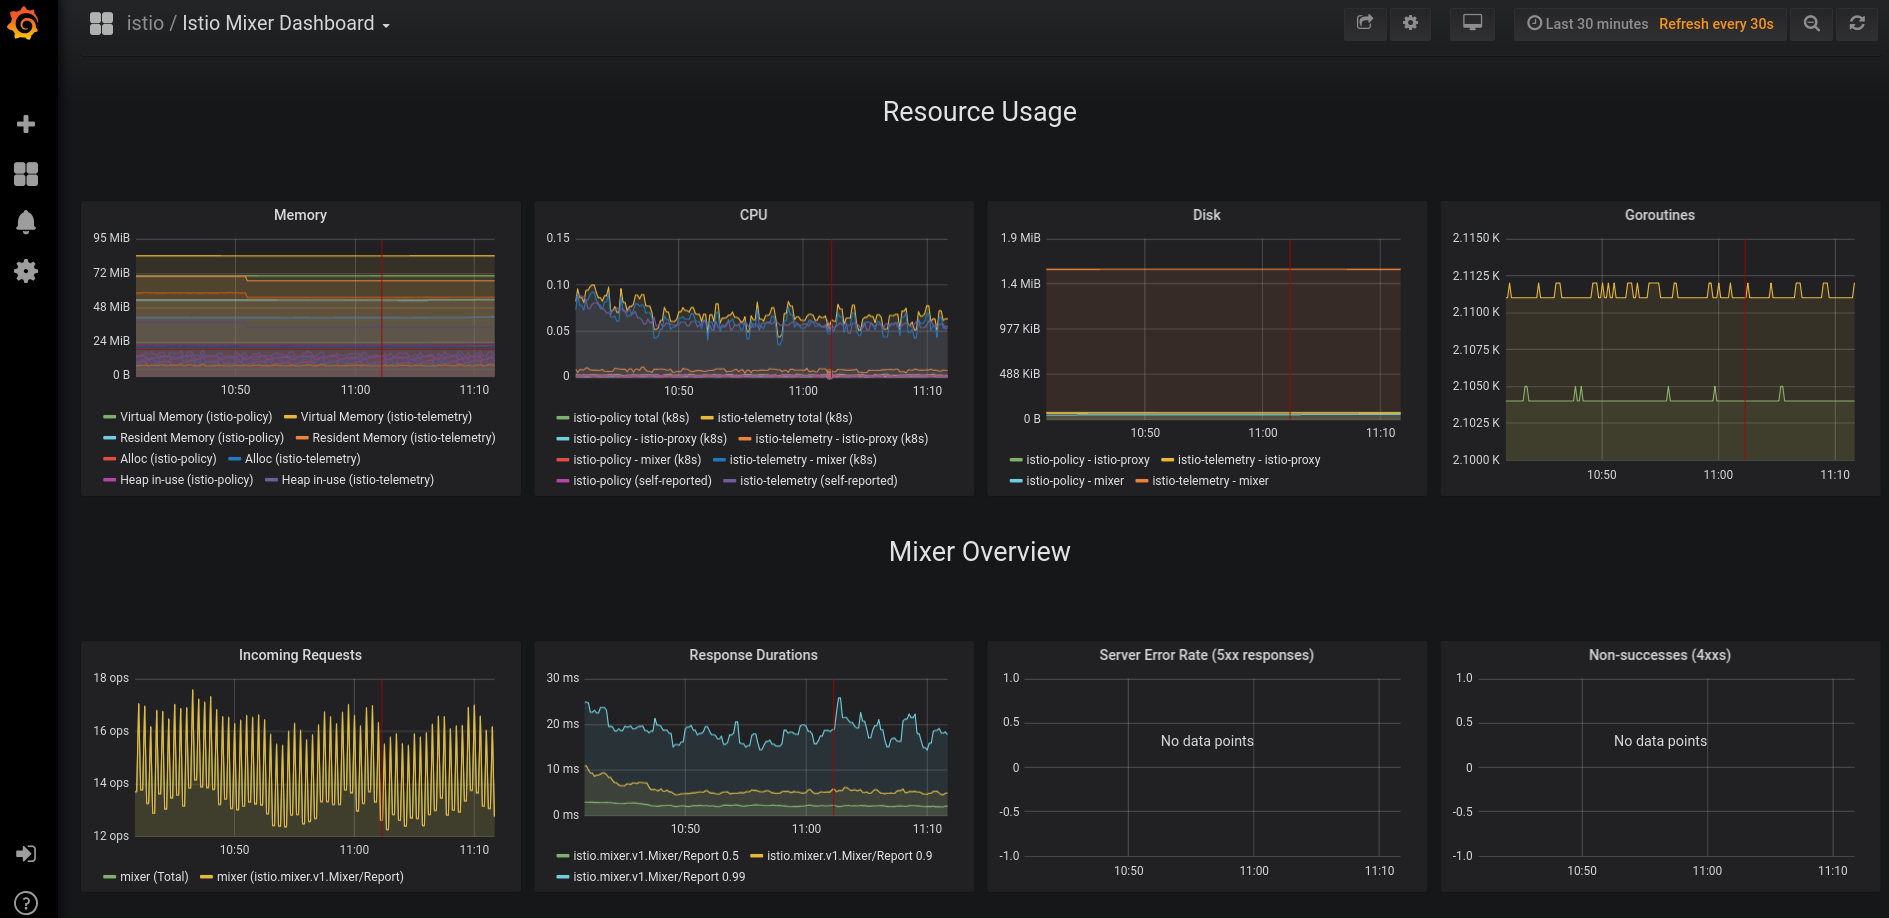 Grafana - Mixer Dashboard